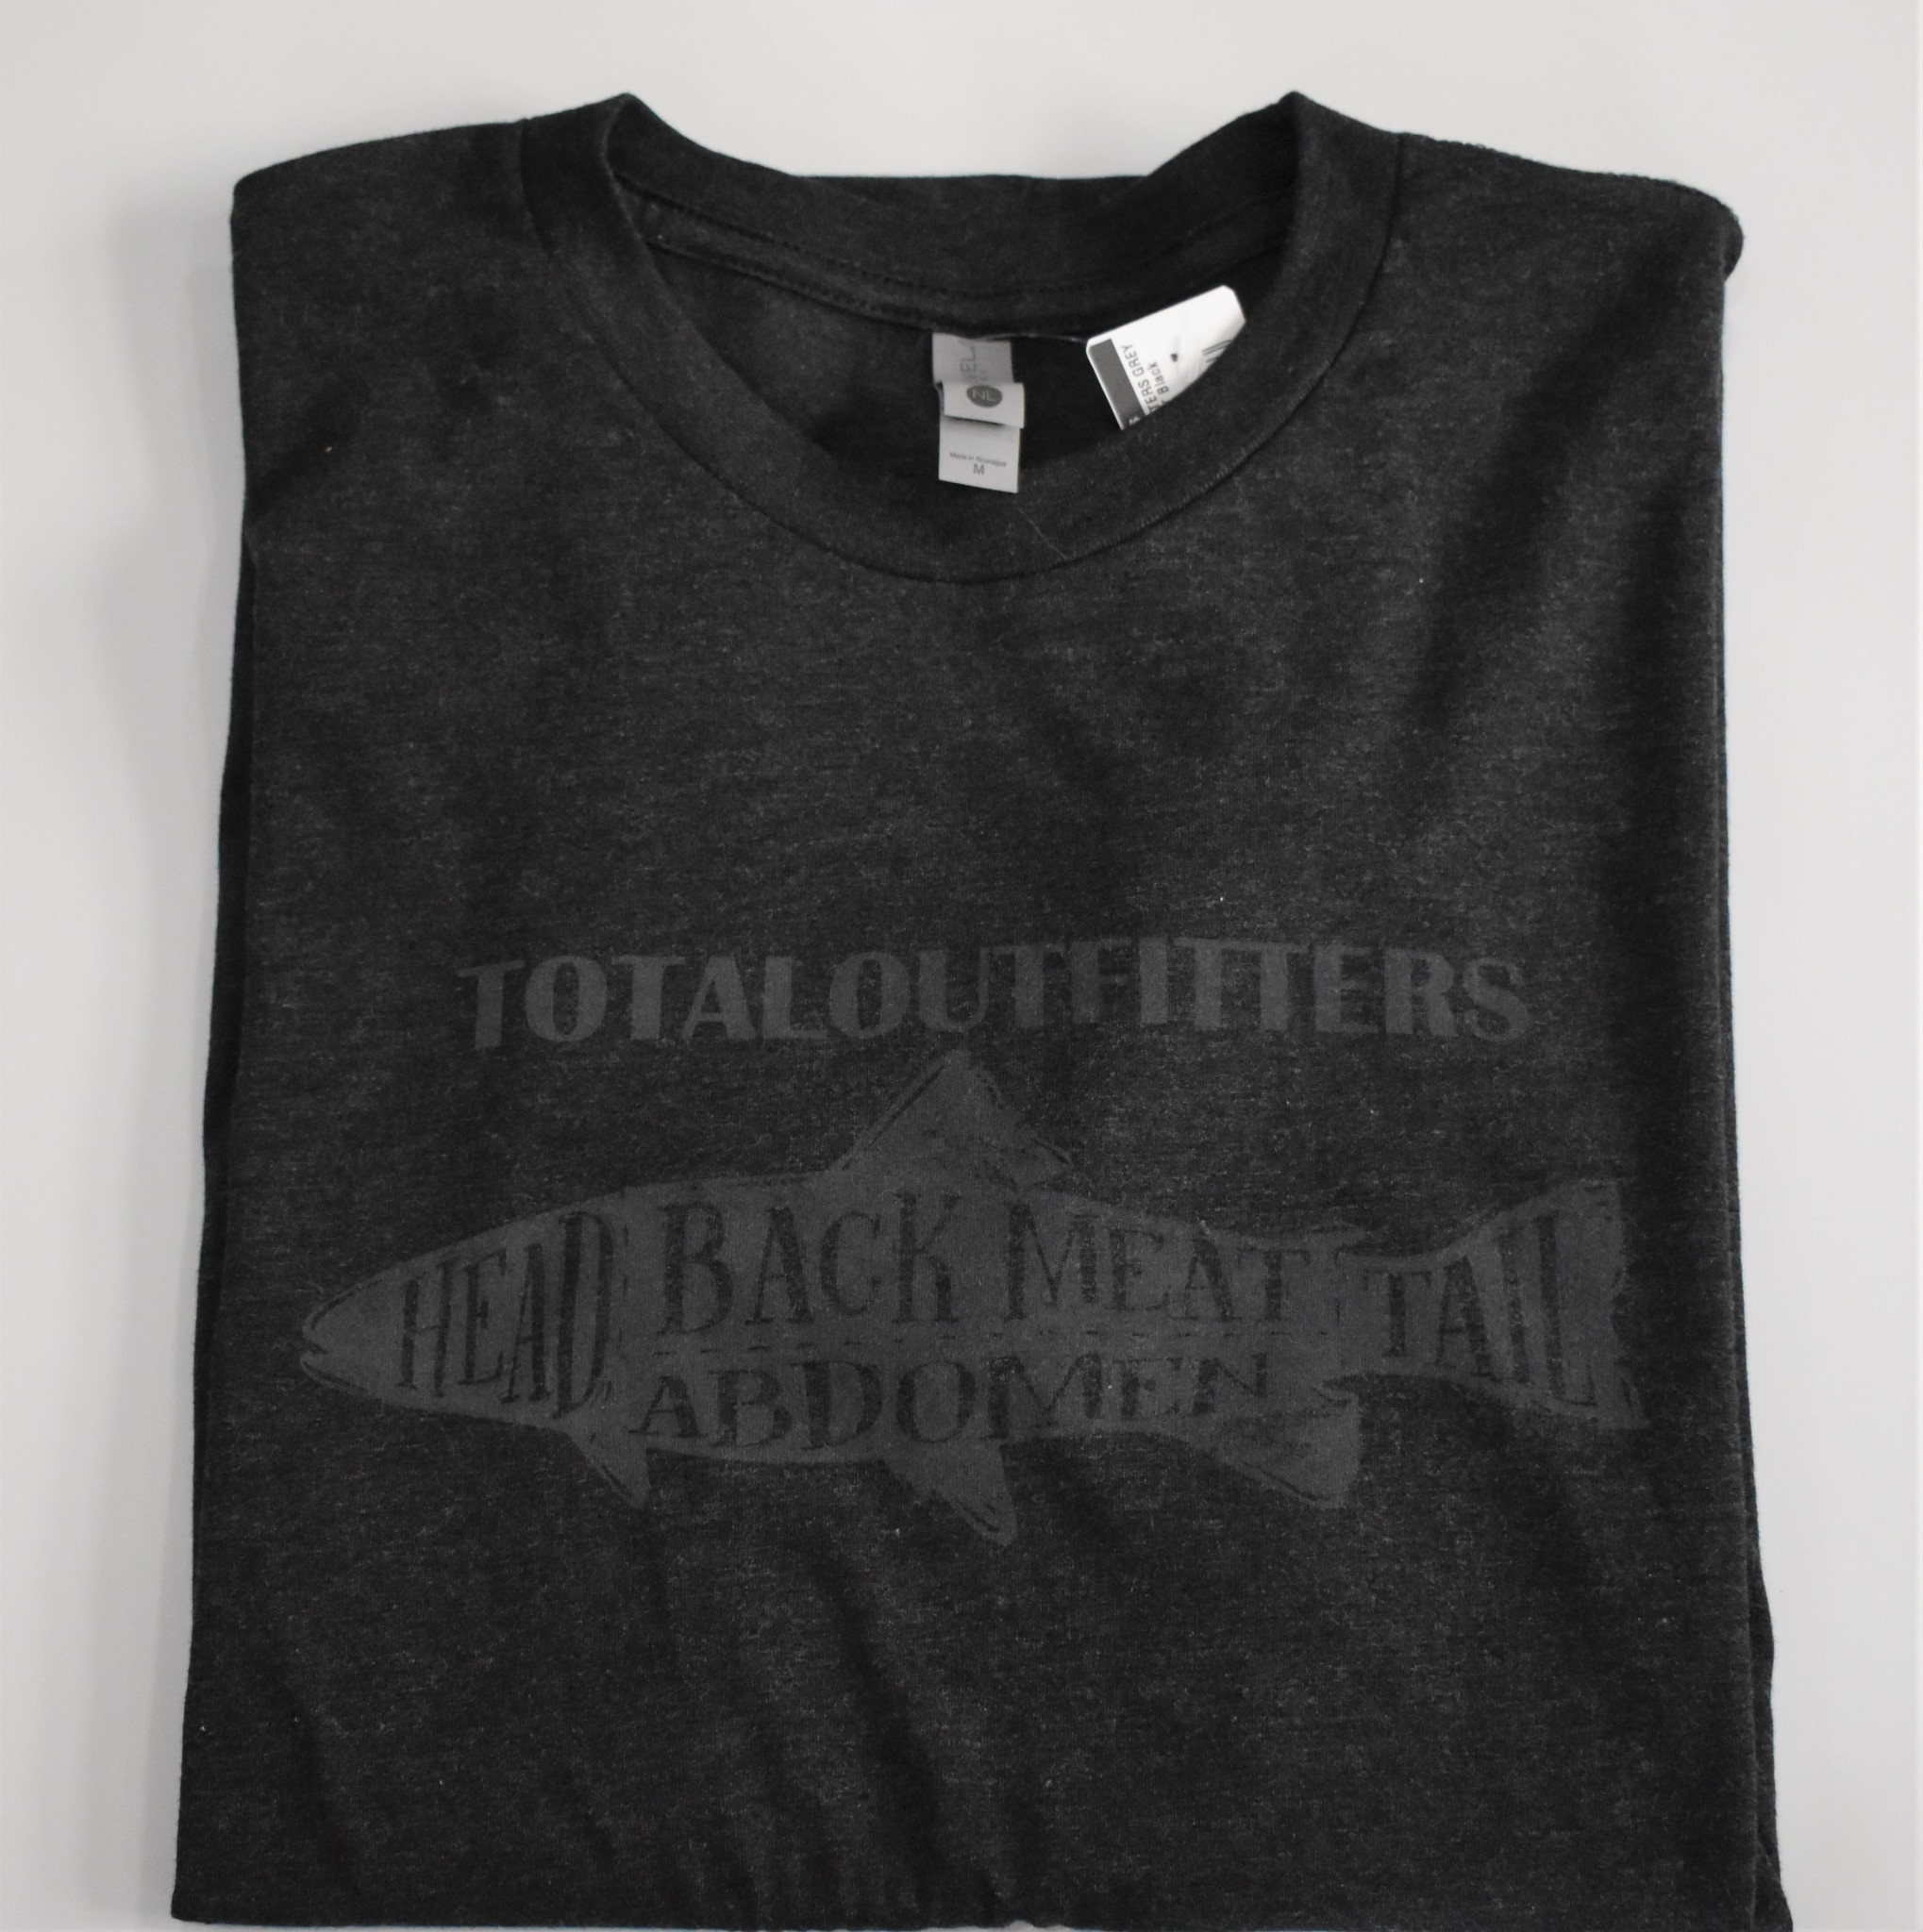 TOTAL OUTFITTERS GREY FISH LOGO T-SHIRT